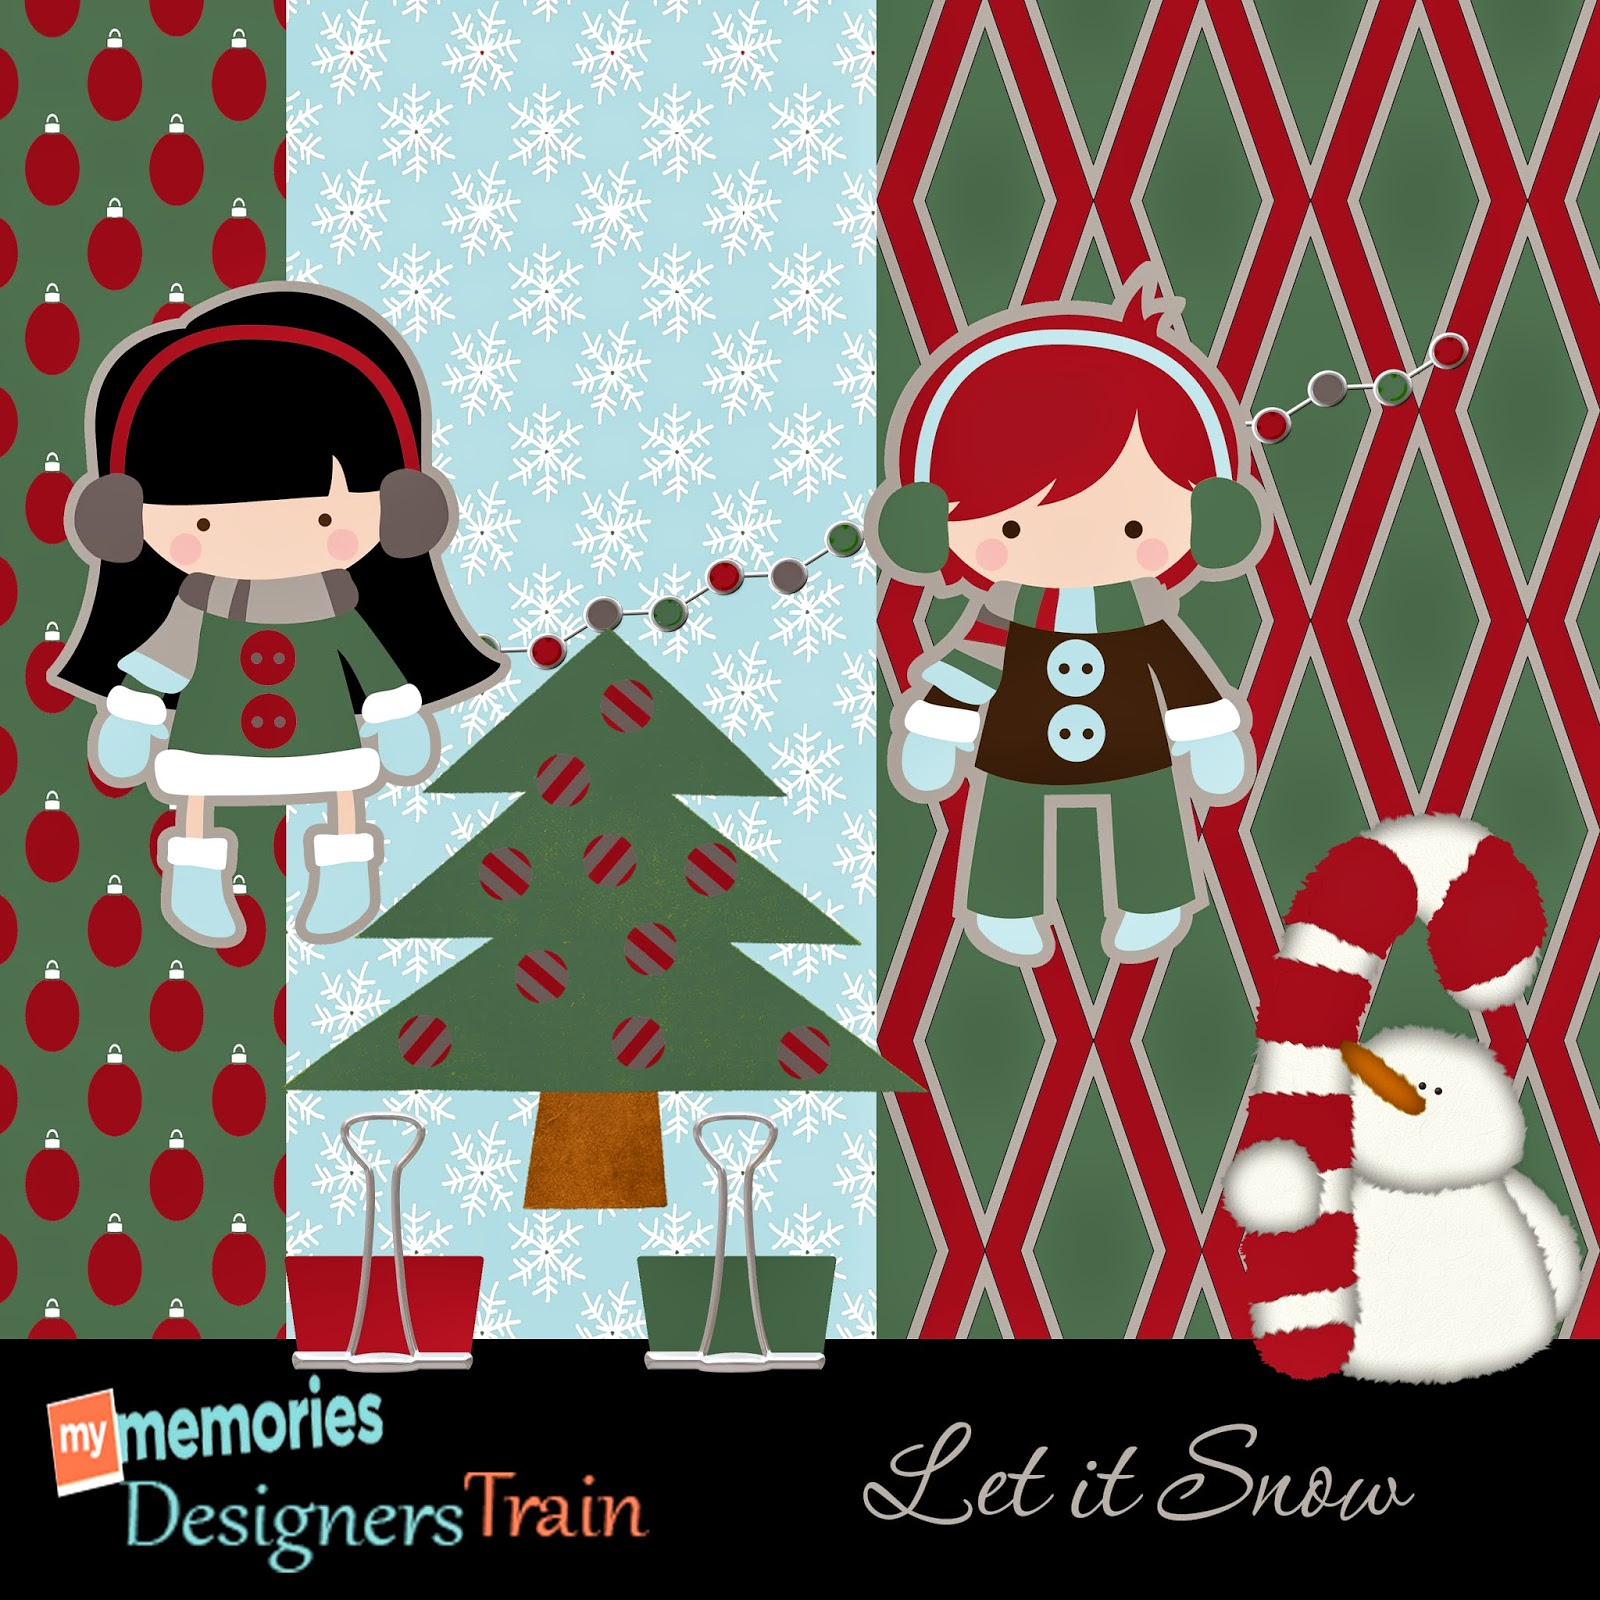 http://www.mymemoriesblog.com/2014/12/december-blog-train.html